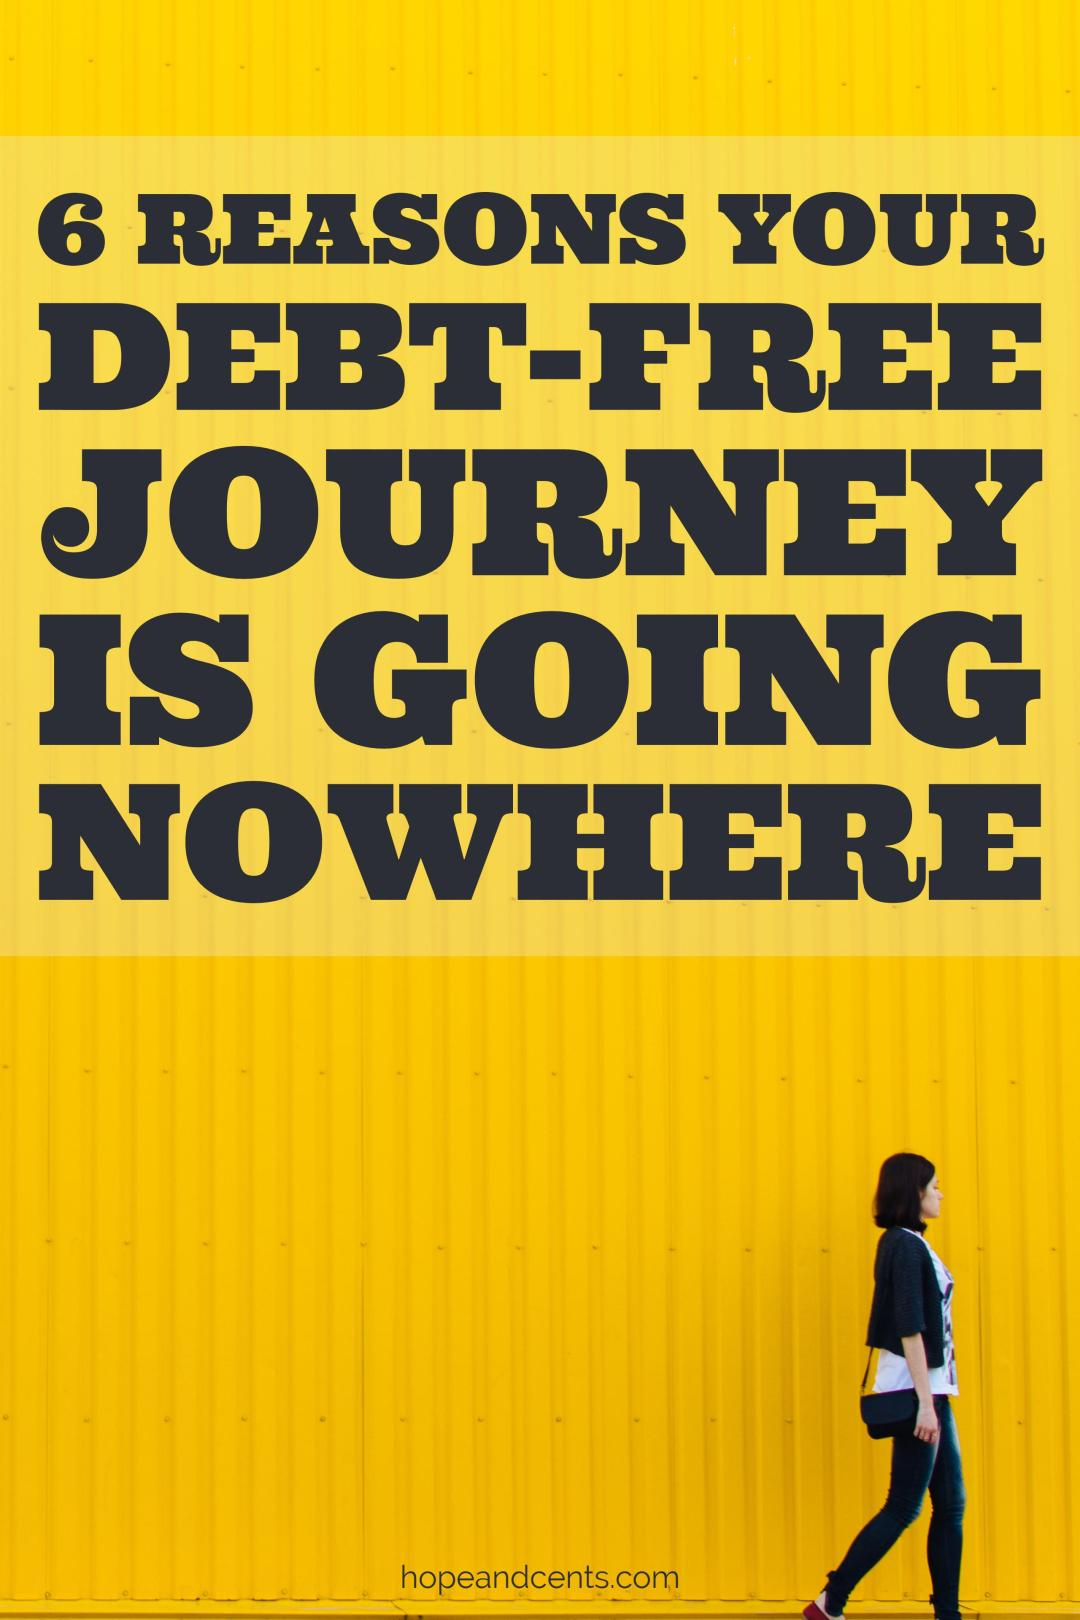 Are you trying to dump your debt but are not seeing progress? Here are some reasons why your debt-free journey is going as you planned.